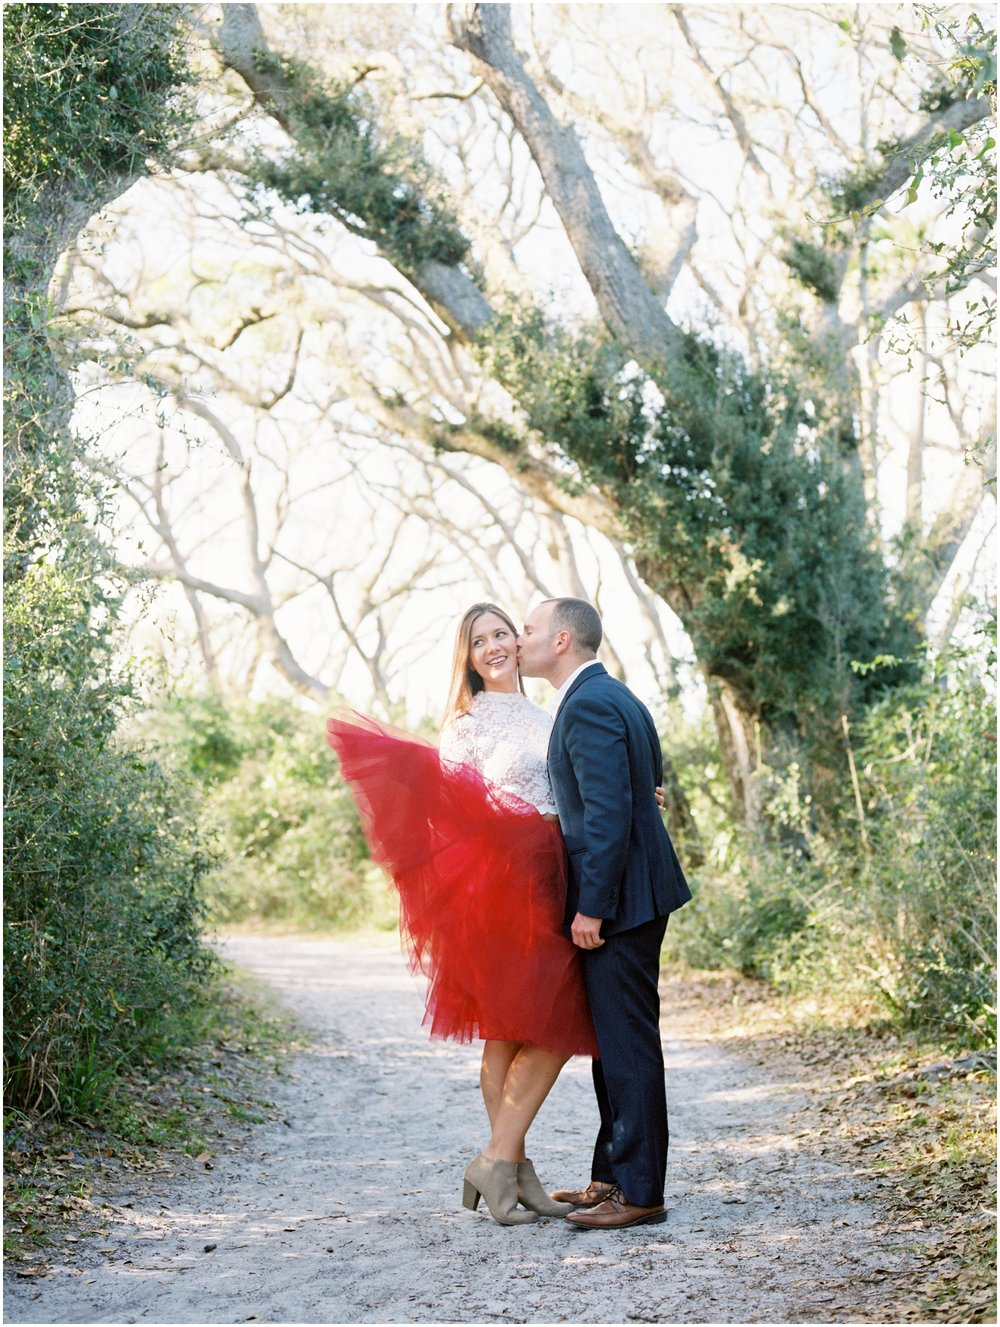 Lisa Silva Photography -Engagement Session at Big Talbot Island- Jacksonville and North East Florida Fine Art Film Photographer_0004.jpg